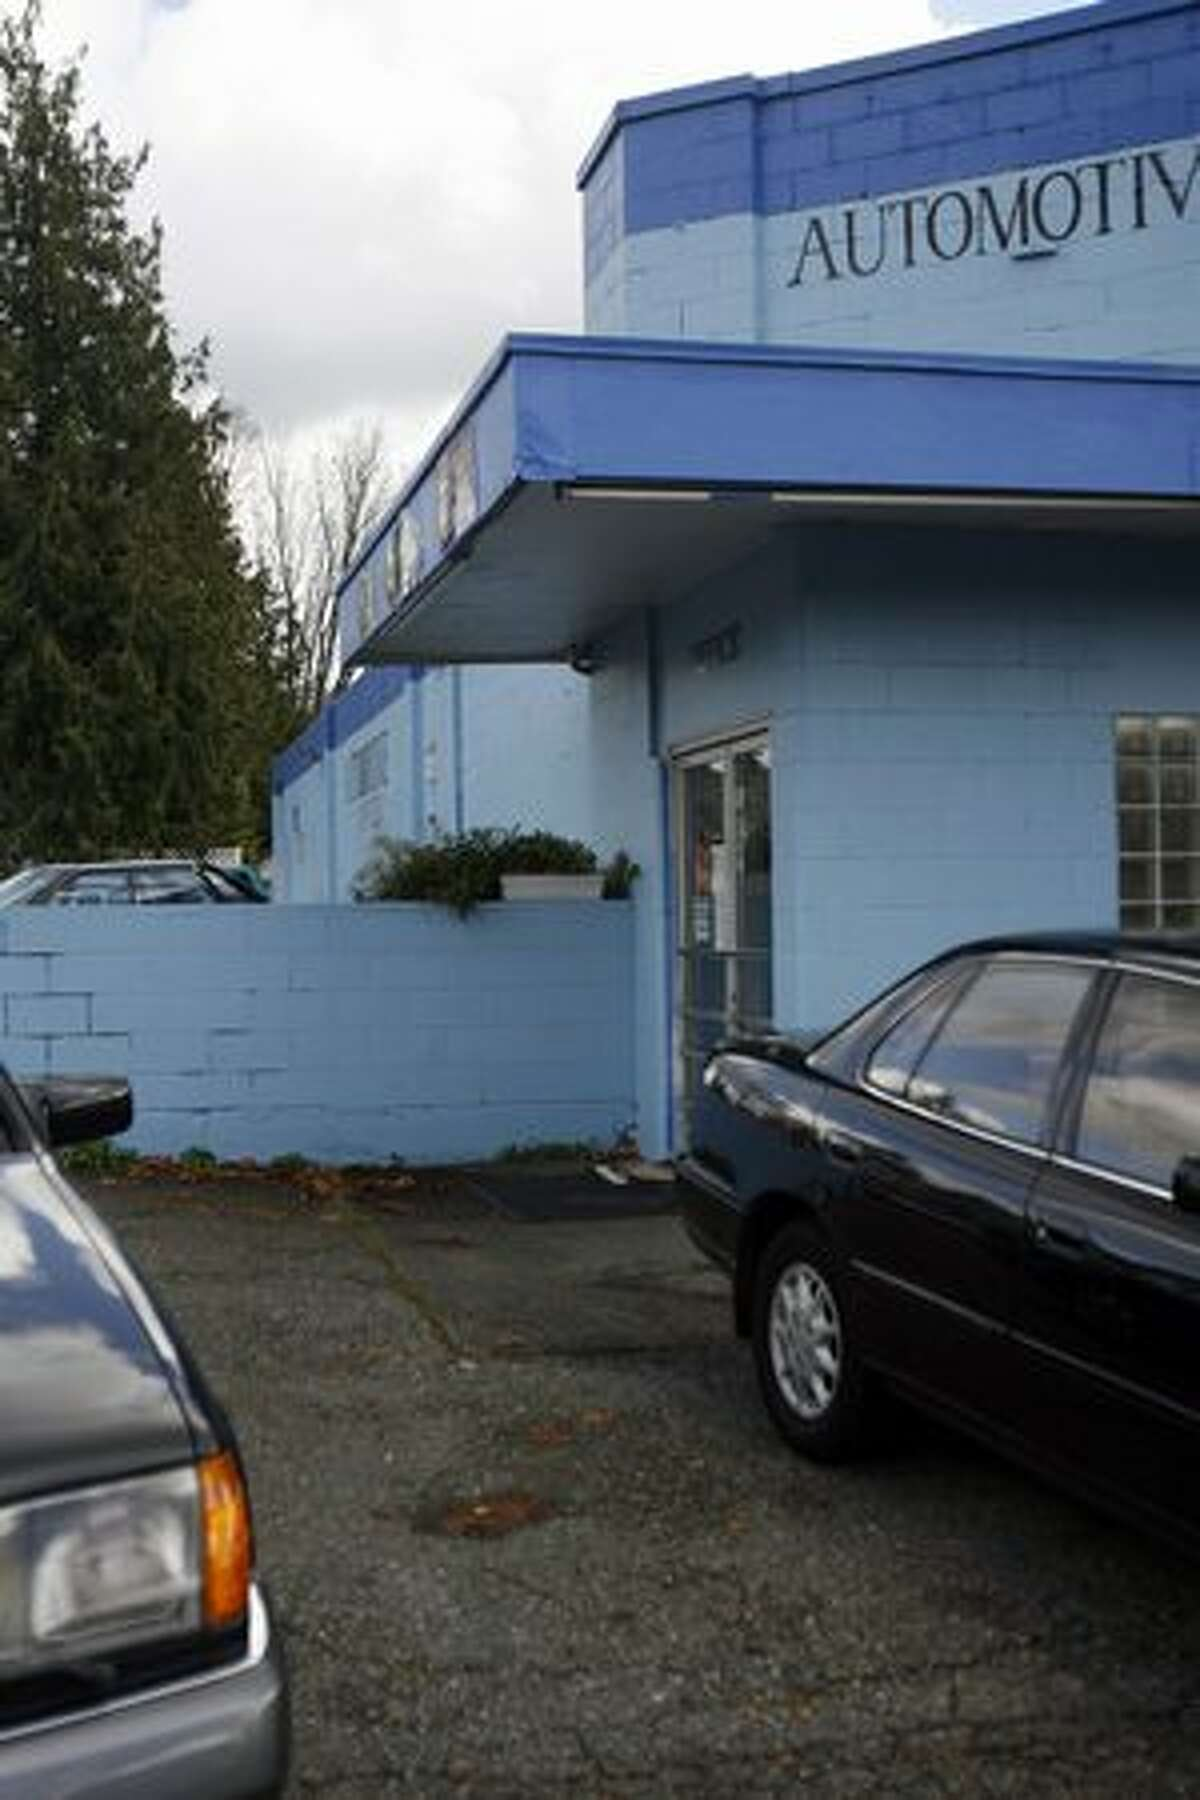 What was the Pinehurst IGA grocery store in 1968 is now J&M Automotive at 11552 15th Ave. N.E. in Seattle. The shop is shown on Nov. 11, 2009, the 41st anniversary of a fatal police shooting.